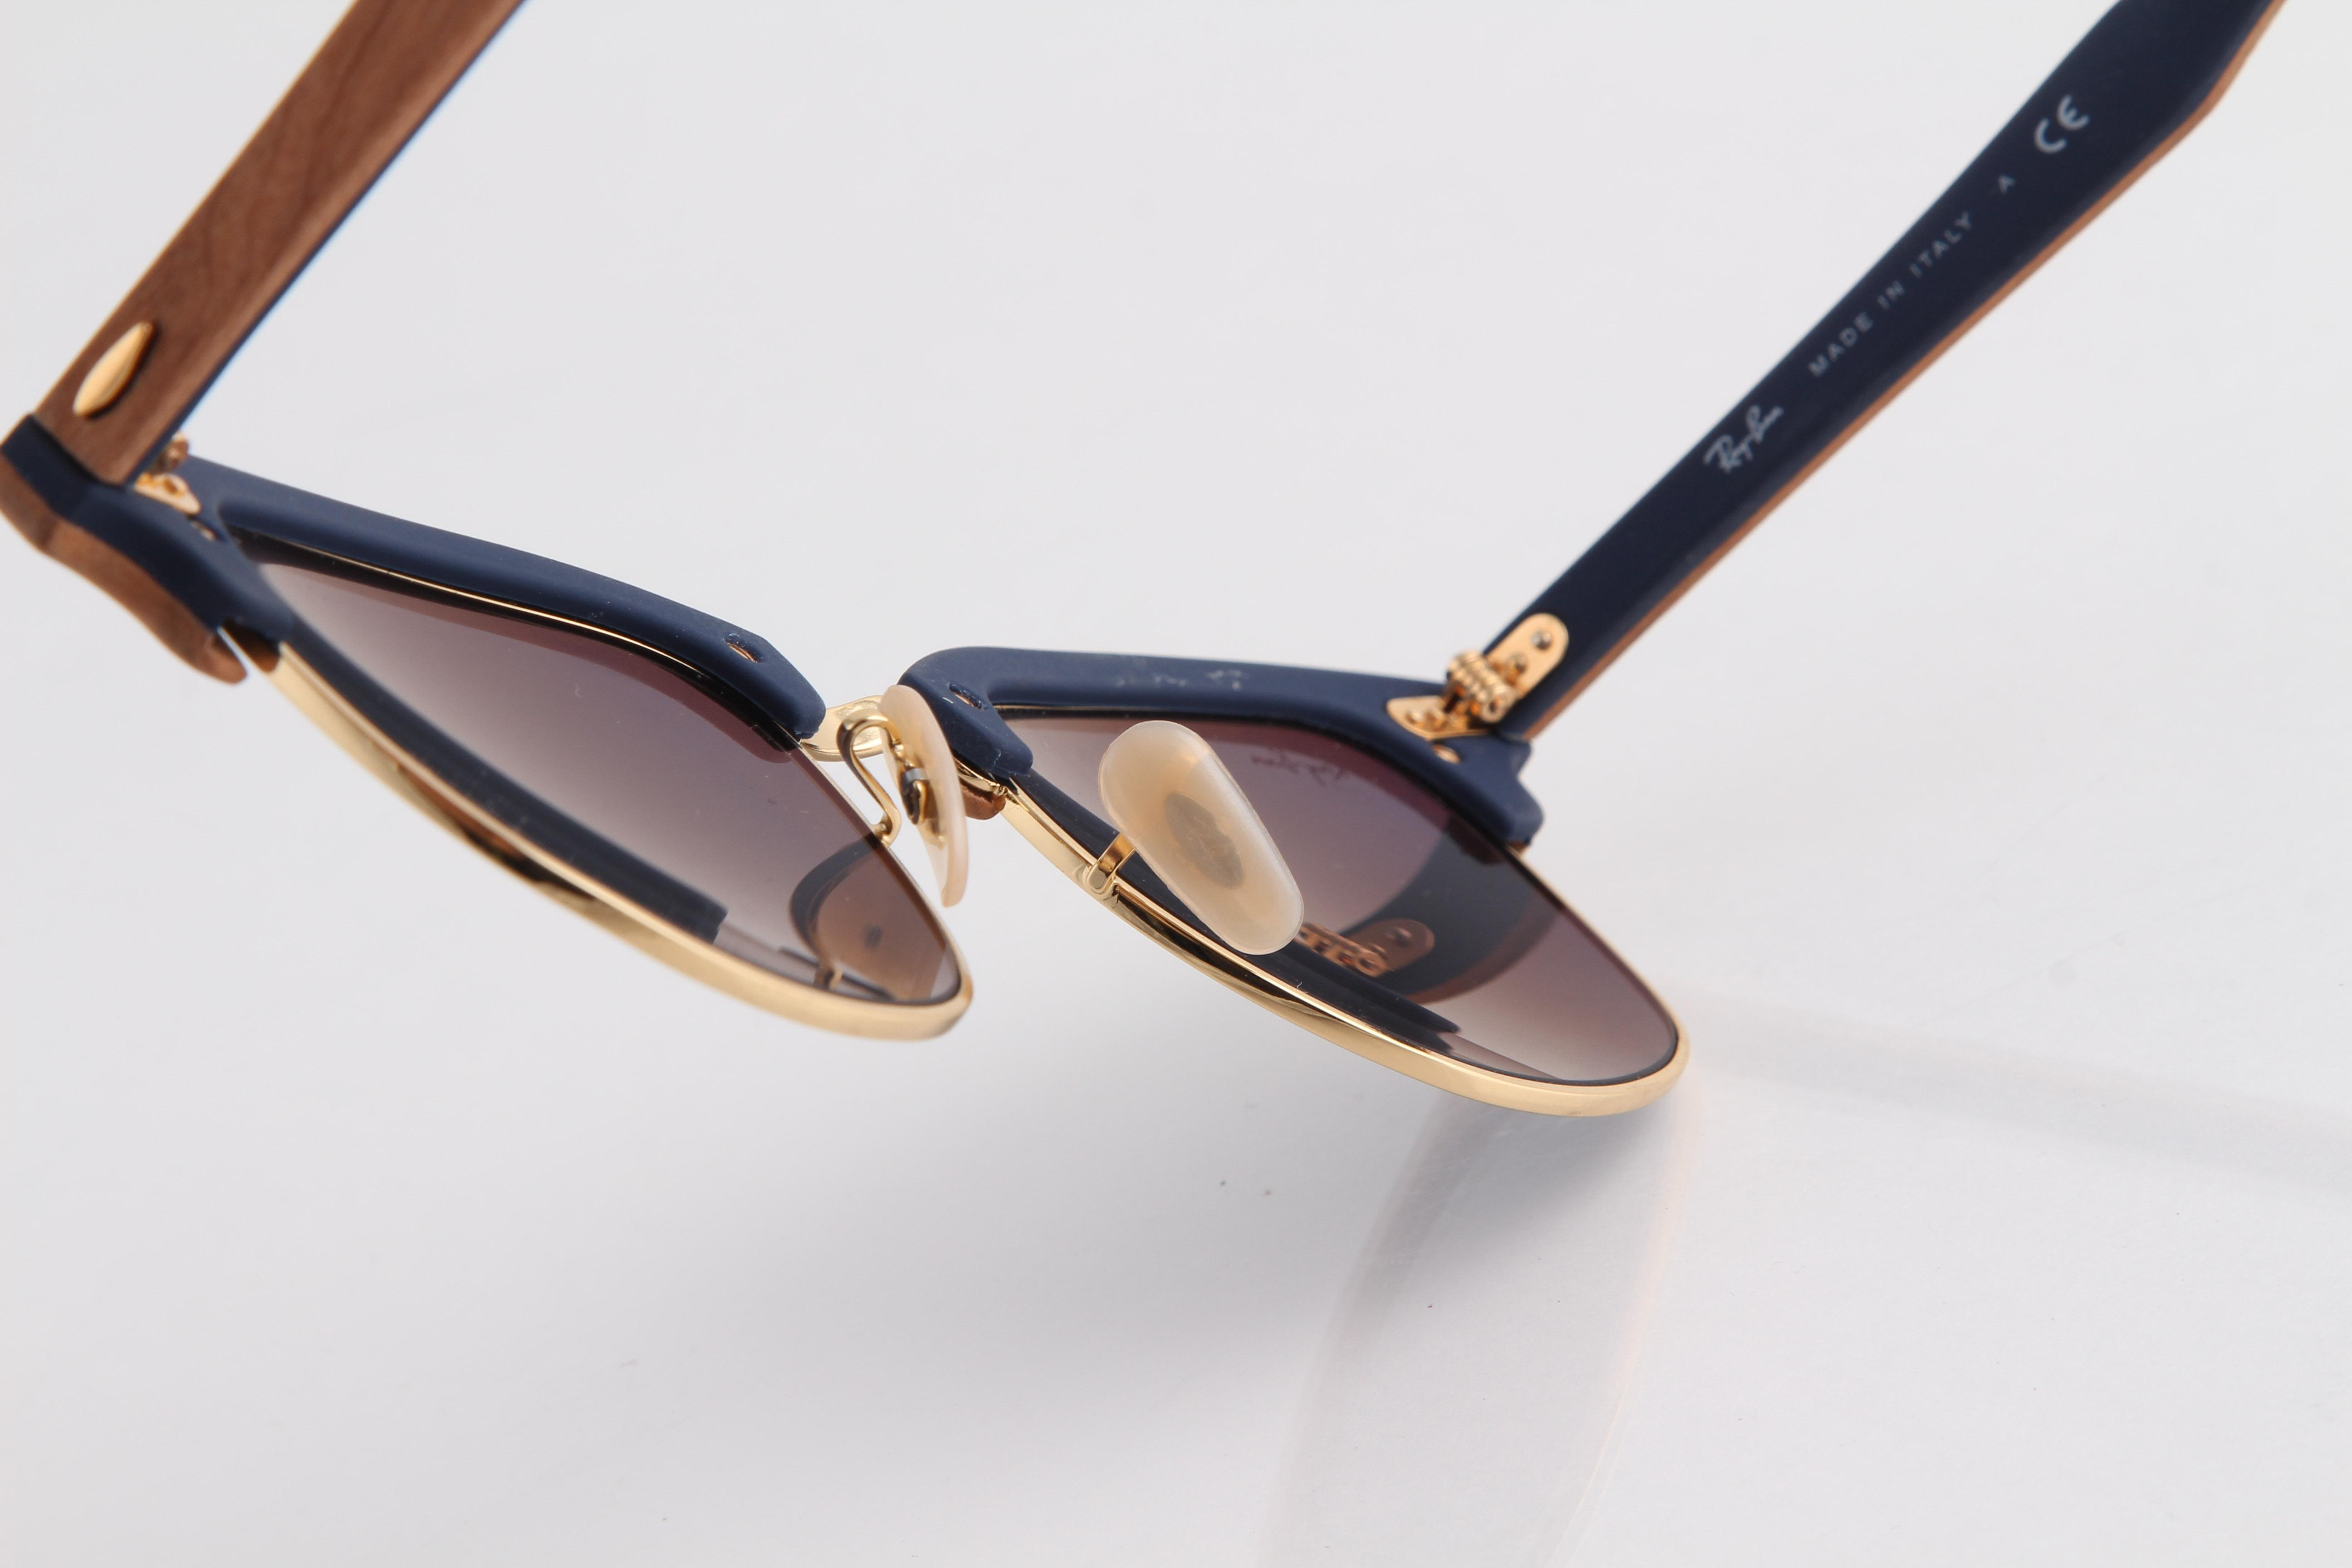 Ray Ban Clubmaster Rb 3016 W0366 Small Mock Tortoise « Heritage Malta